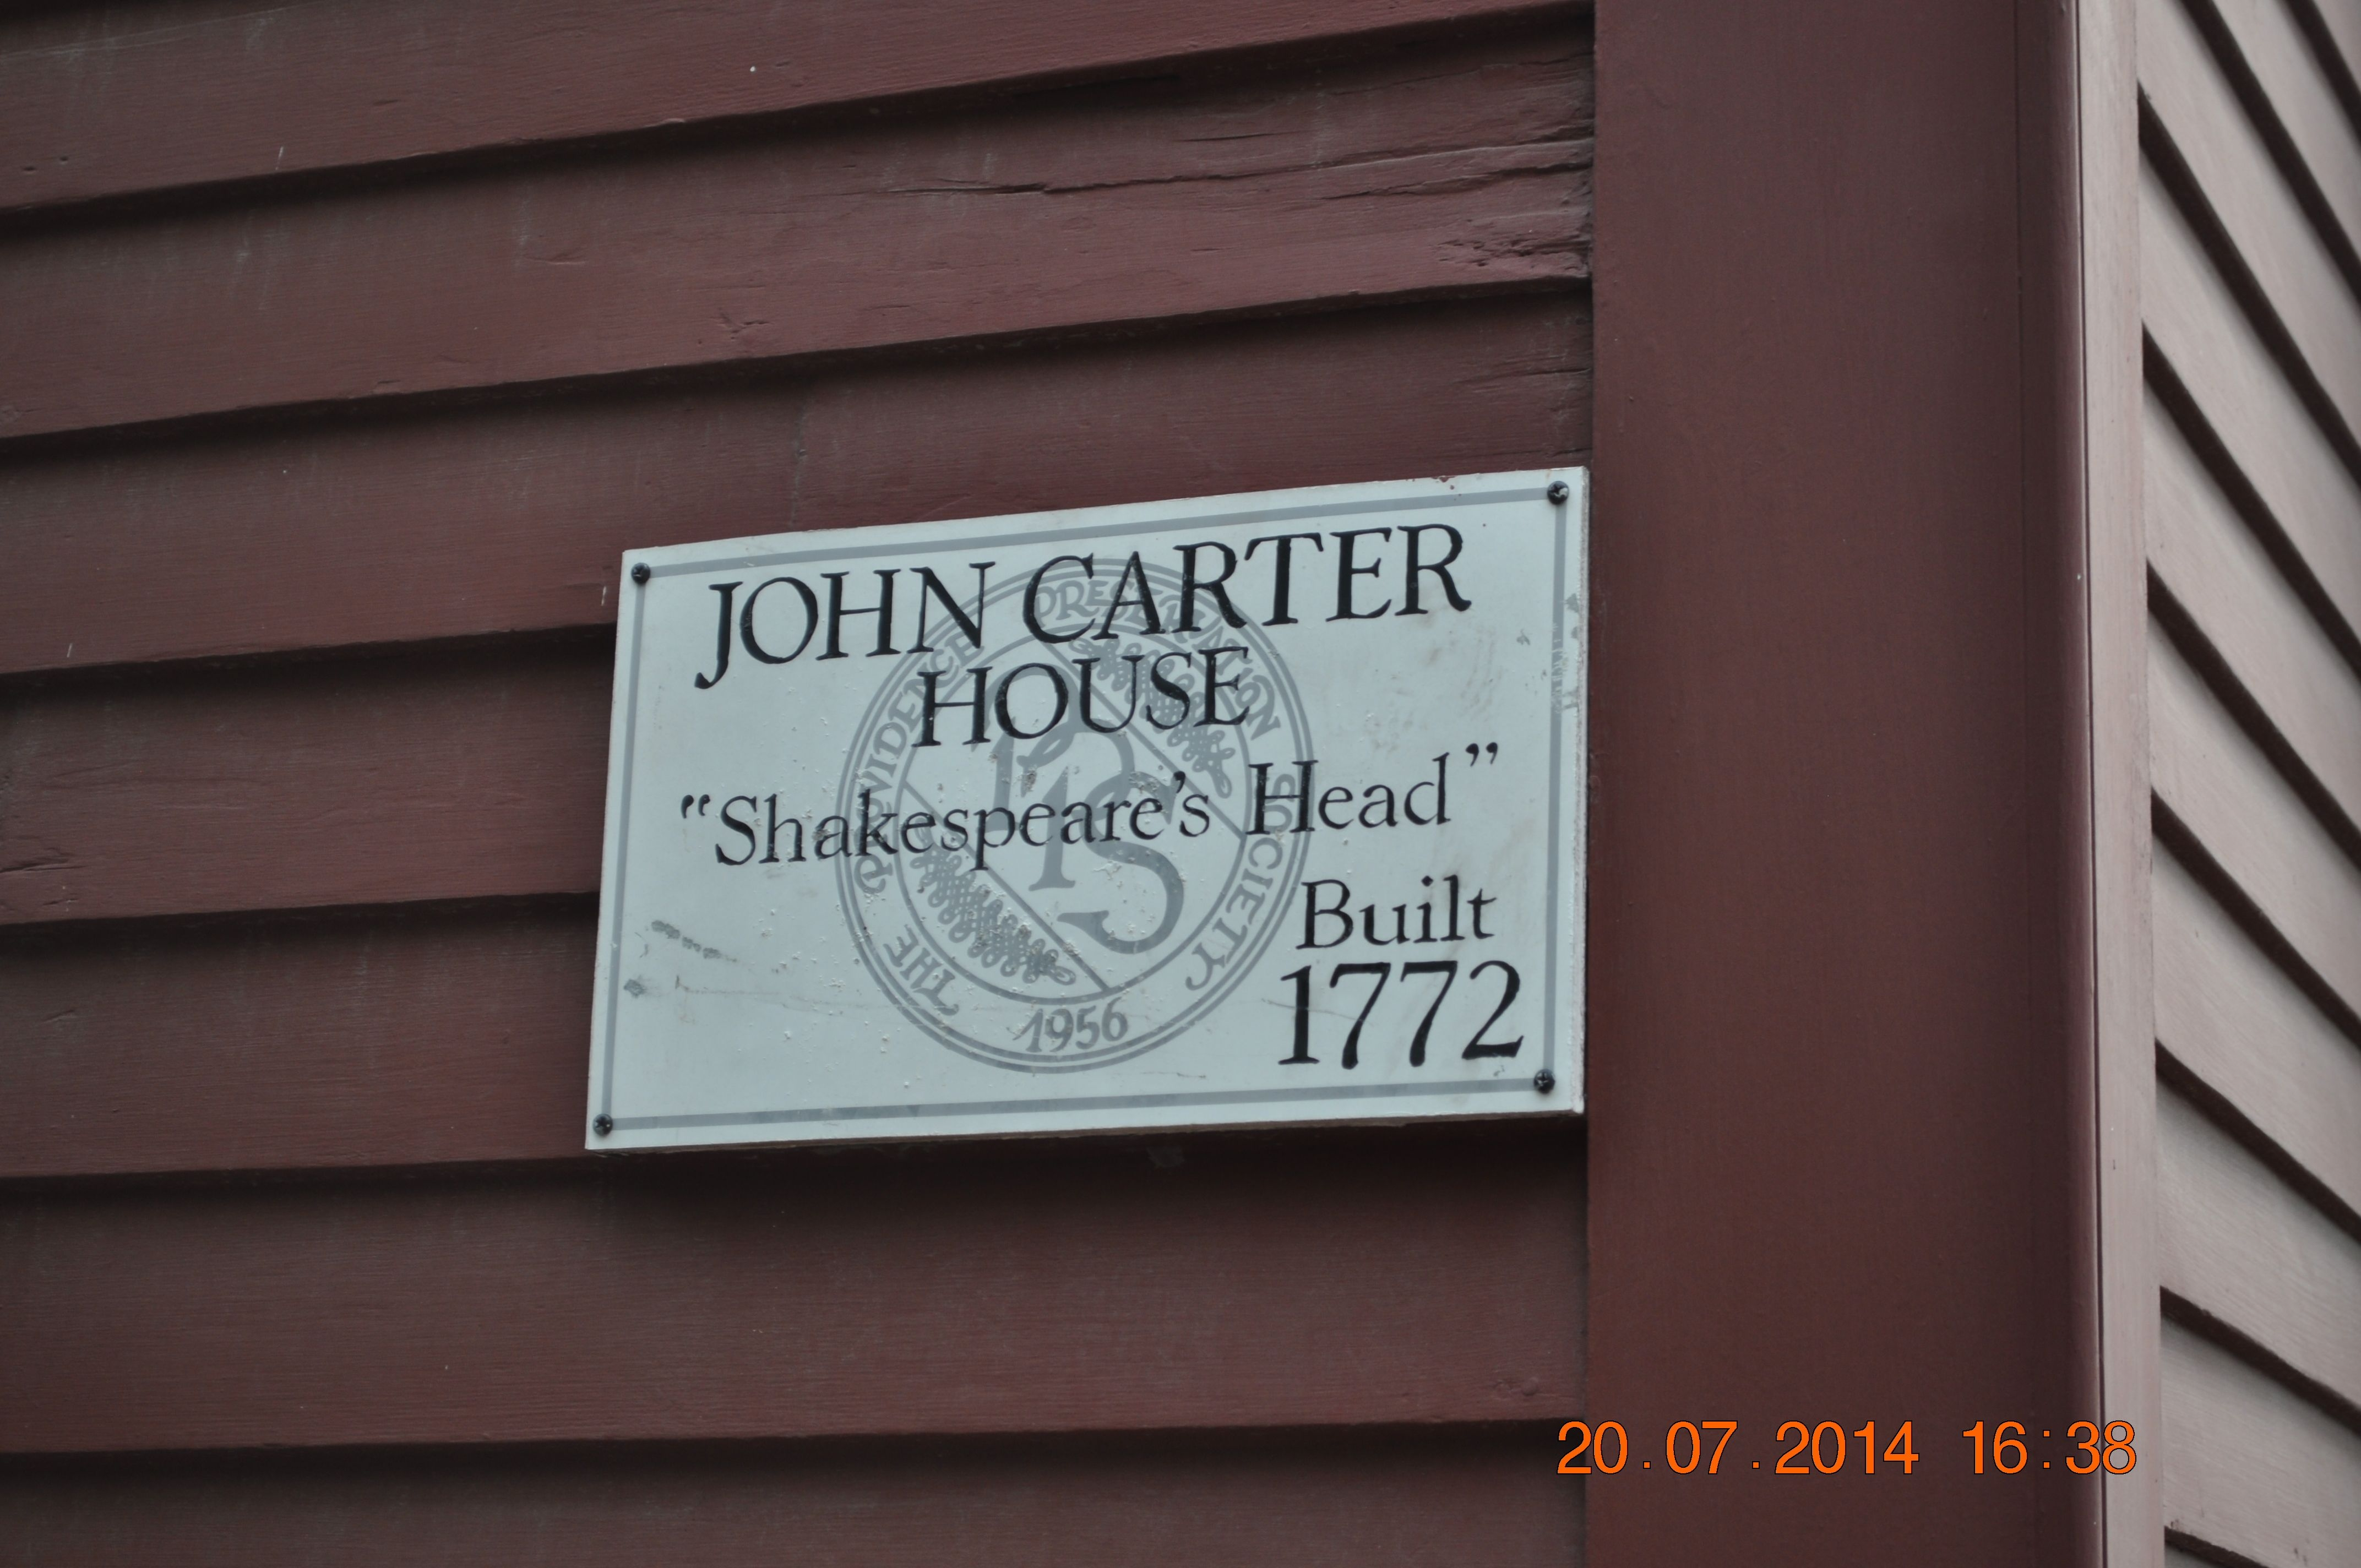 Shakespeare's Head sign (image from Historic Markers Database)